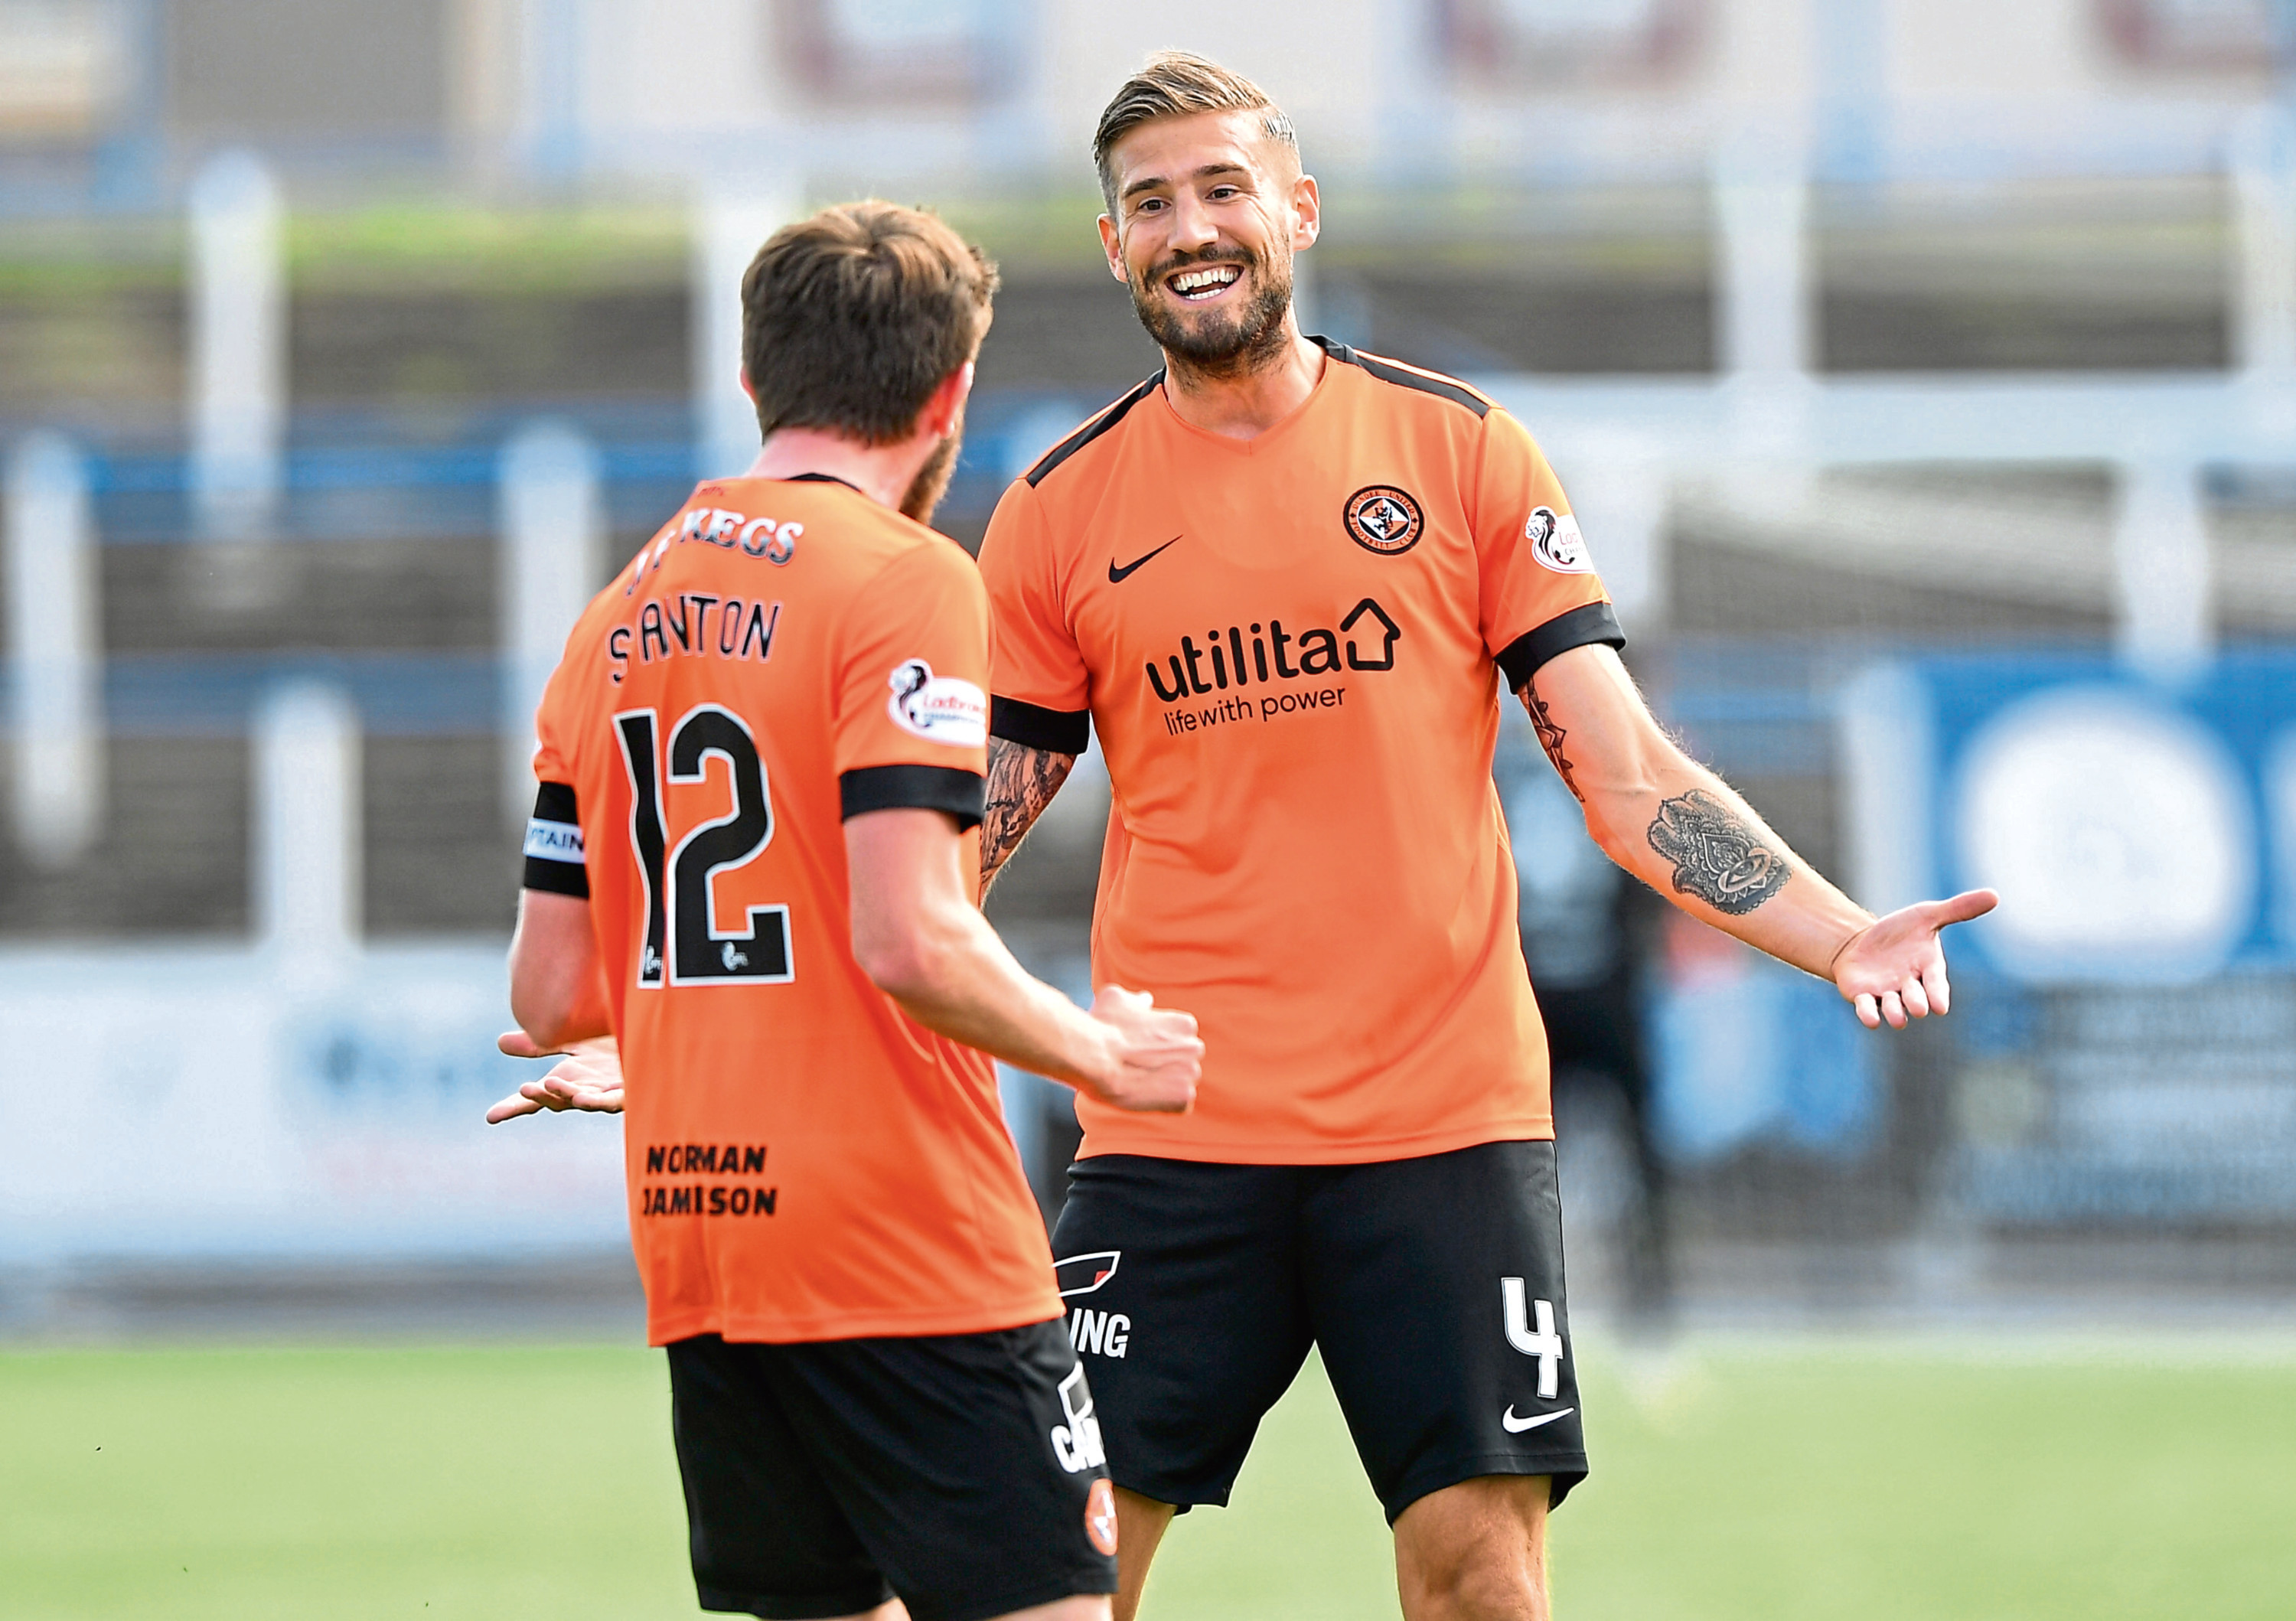 Dundee United will hope their team bonding session last weekend can help them to keep their winning form going when Partick Thistle come calling on Saturday.